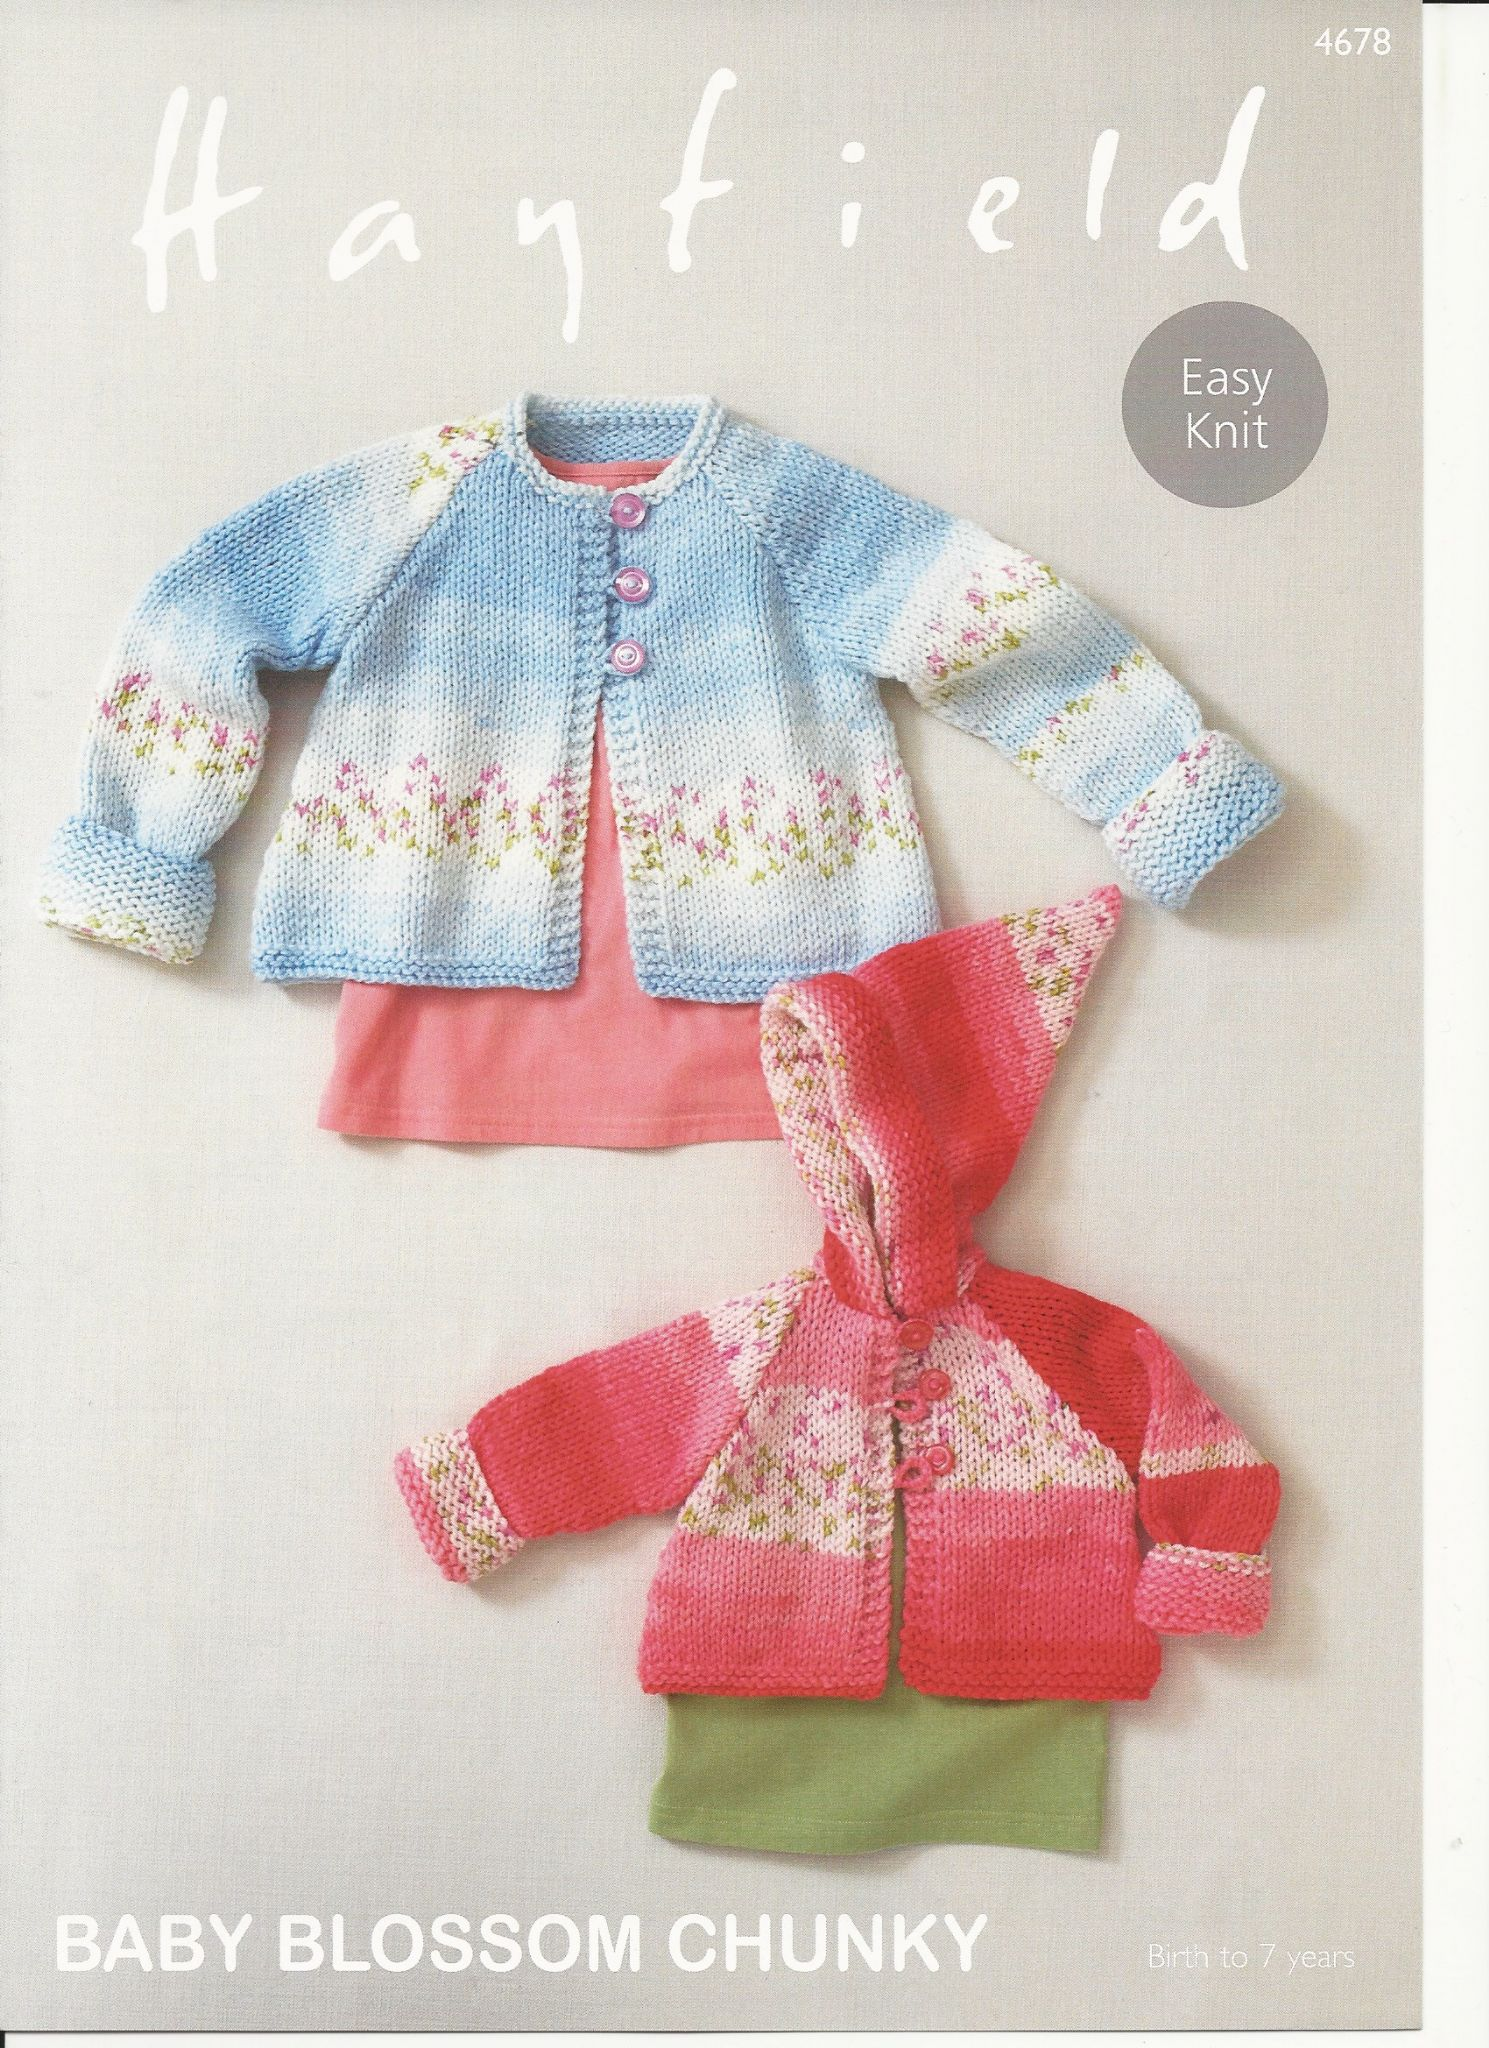 Hayfield Knitting Patterns For Babies : Hayfield Babies Coats Knitting Pattern in Baby Blossom Chunky 4678